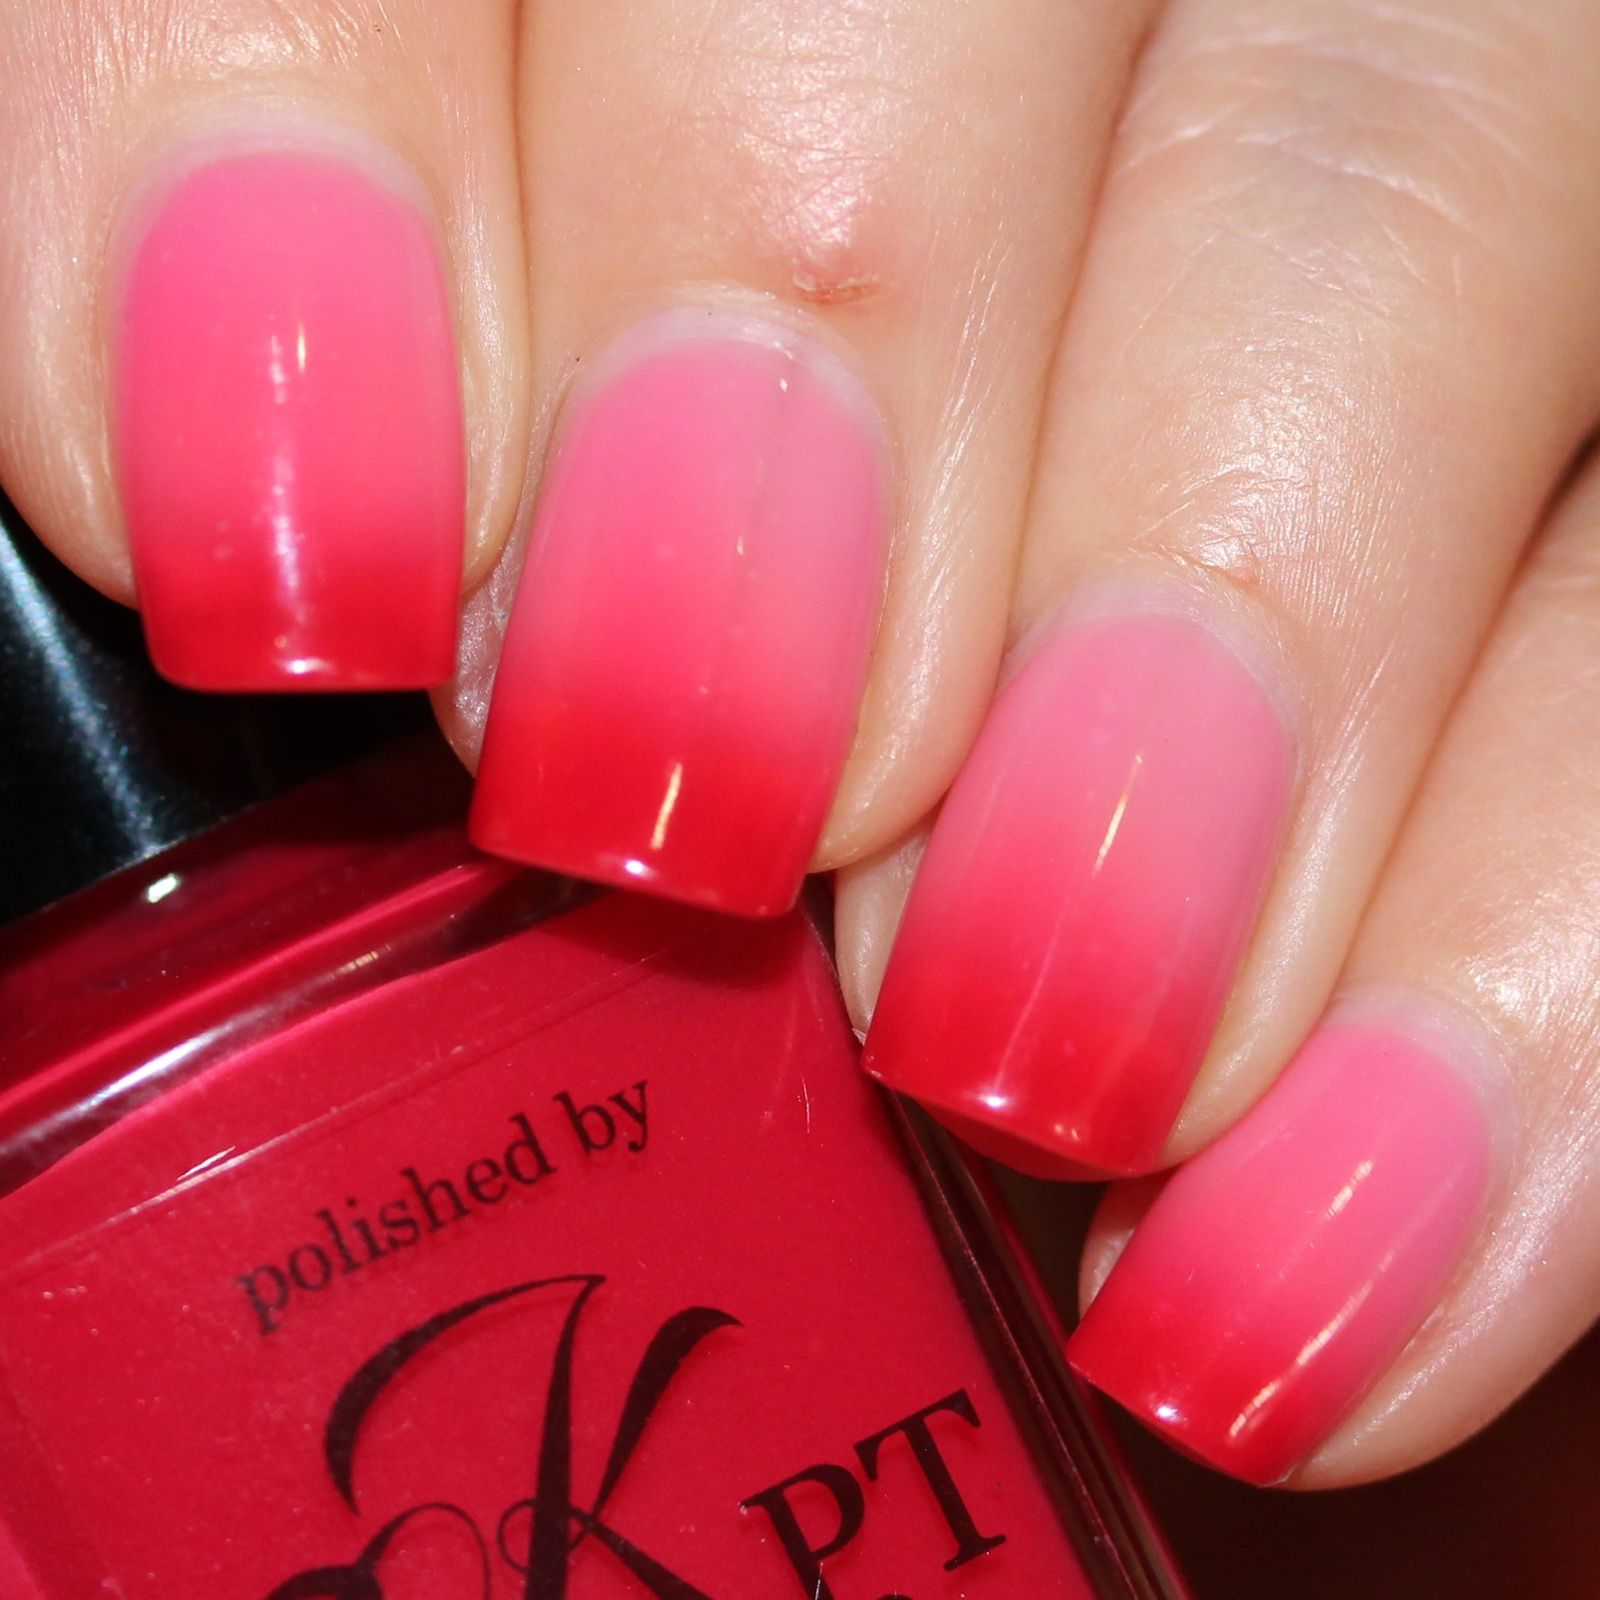 Duri Rejuvacote / Polished by KPT Camellia / Sally Hansen Miracle Gel Top Coat